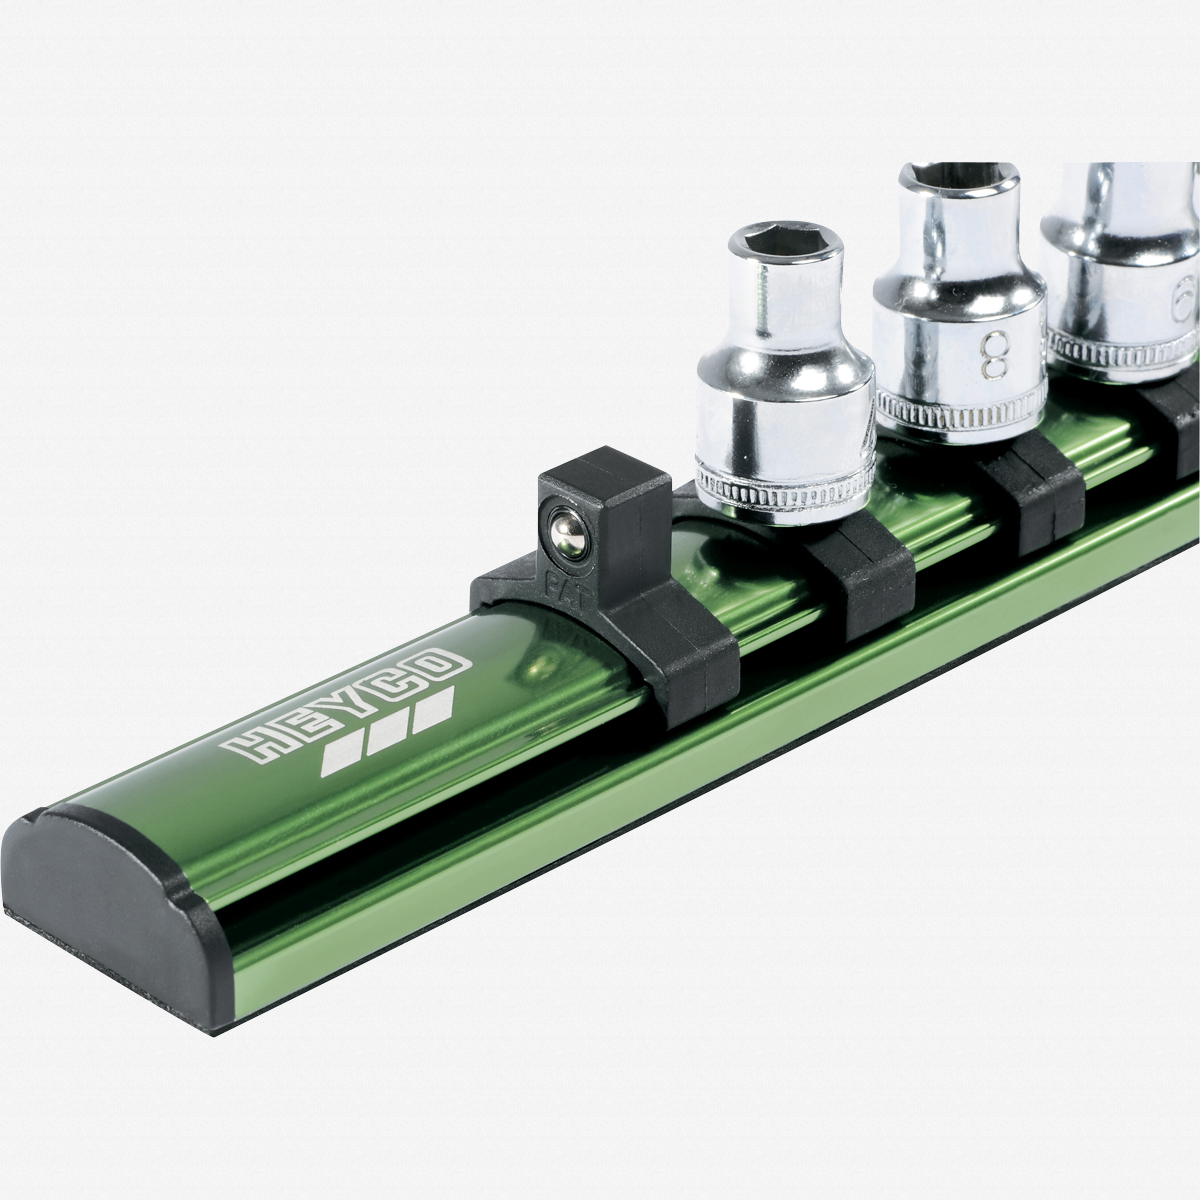 "Heyco 0407100 Metric Socket Set on Aluminum Rail - 3/8"" Drive, 16 Pieces - KC Tool"